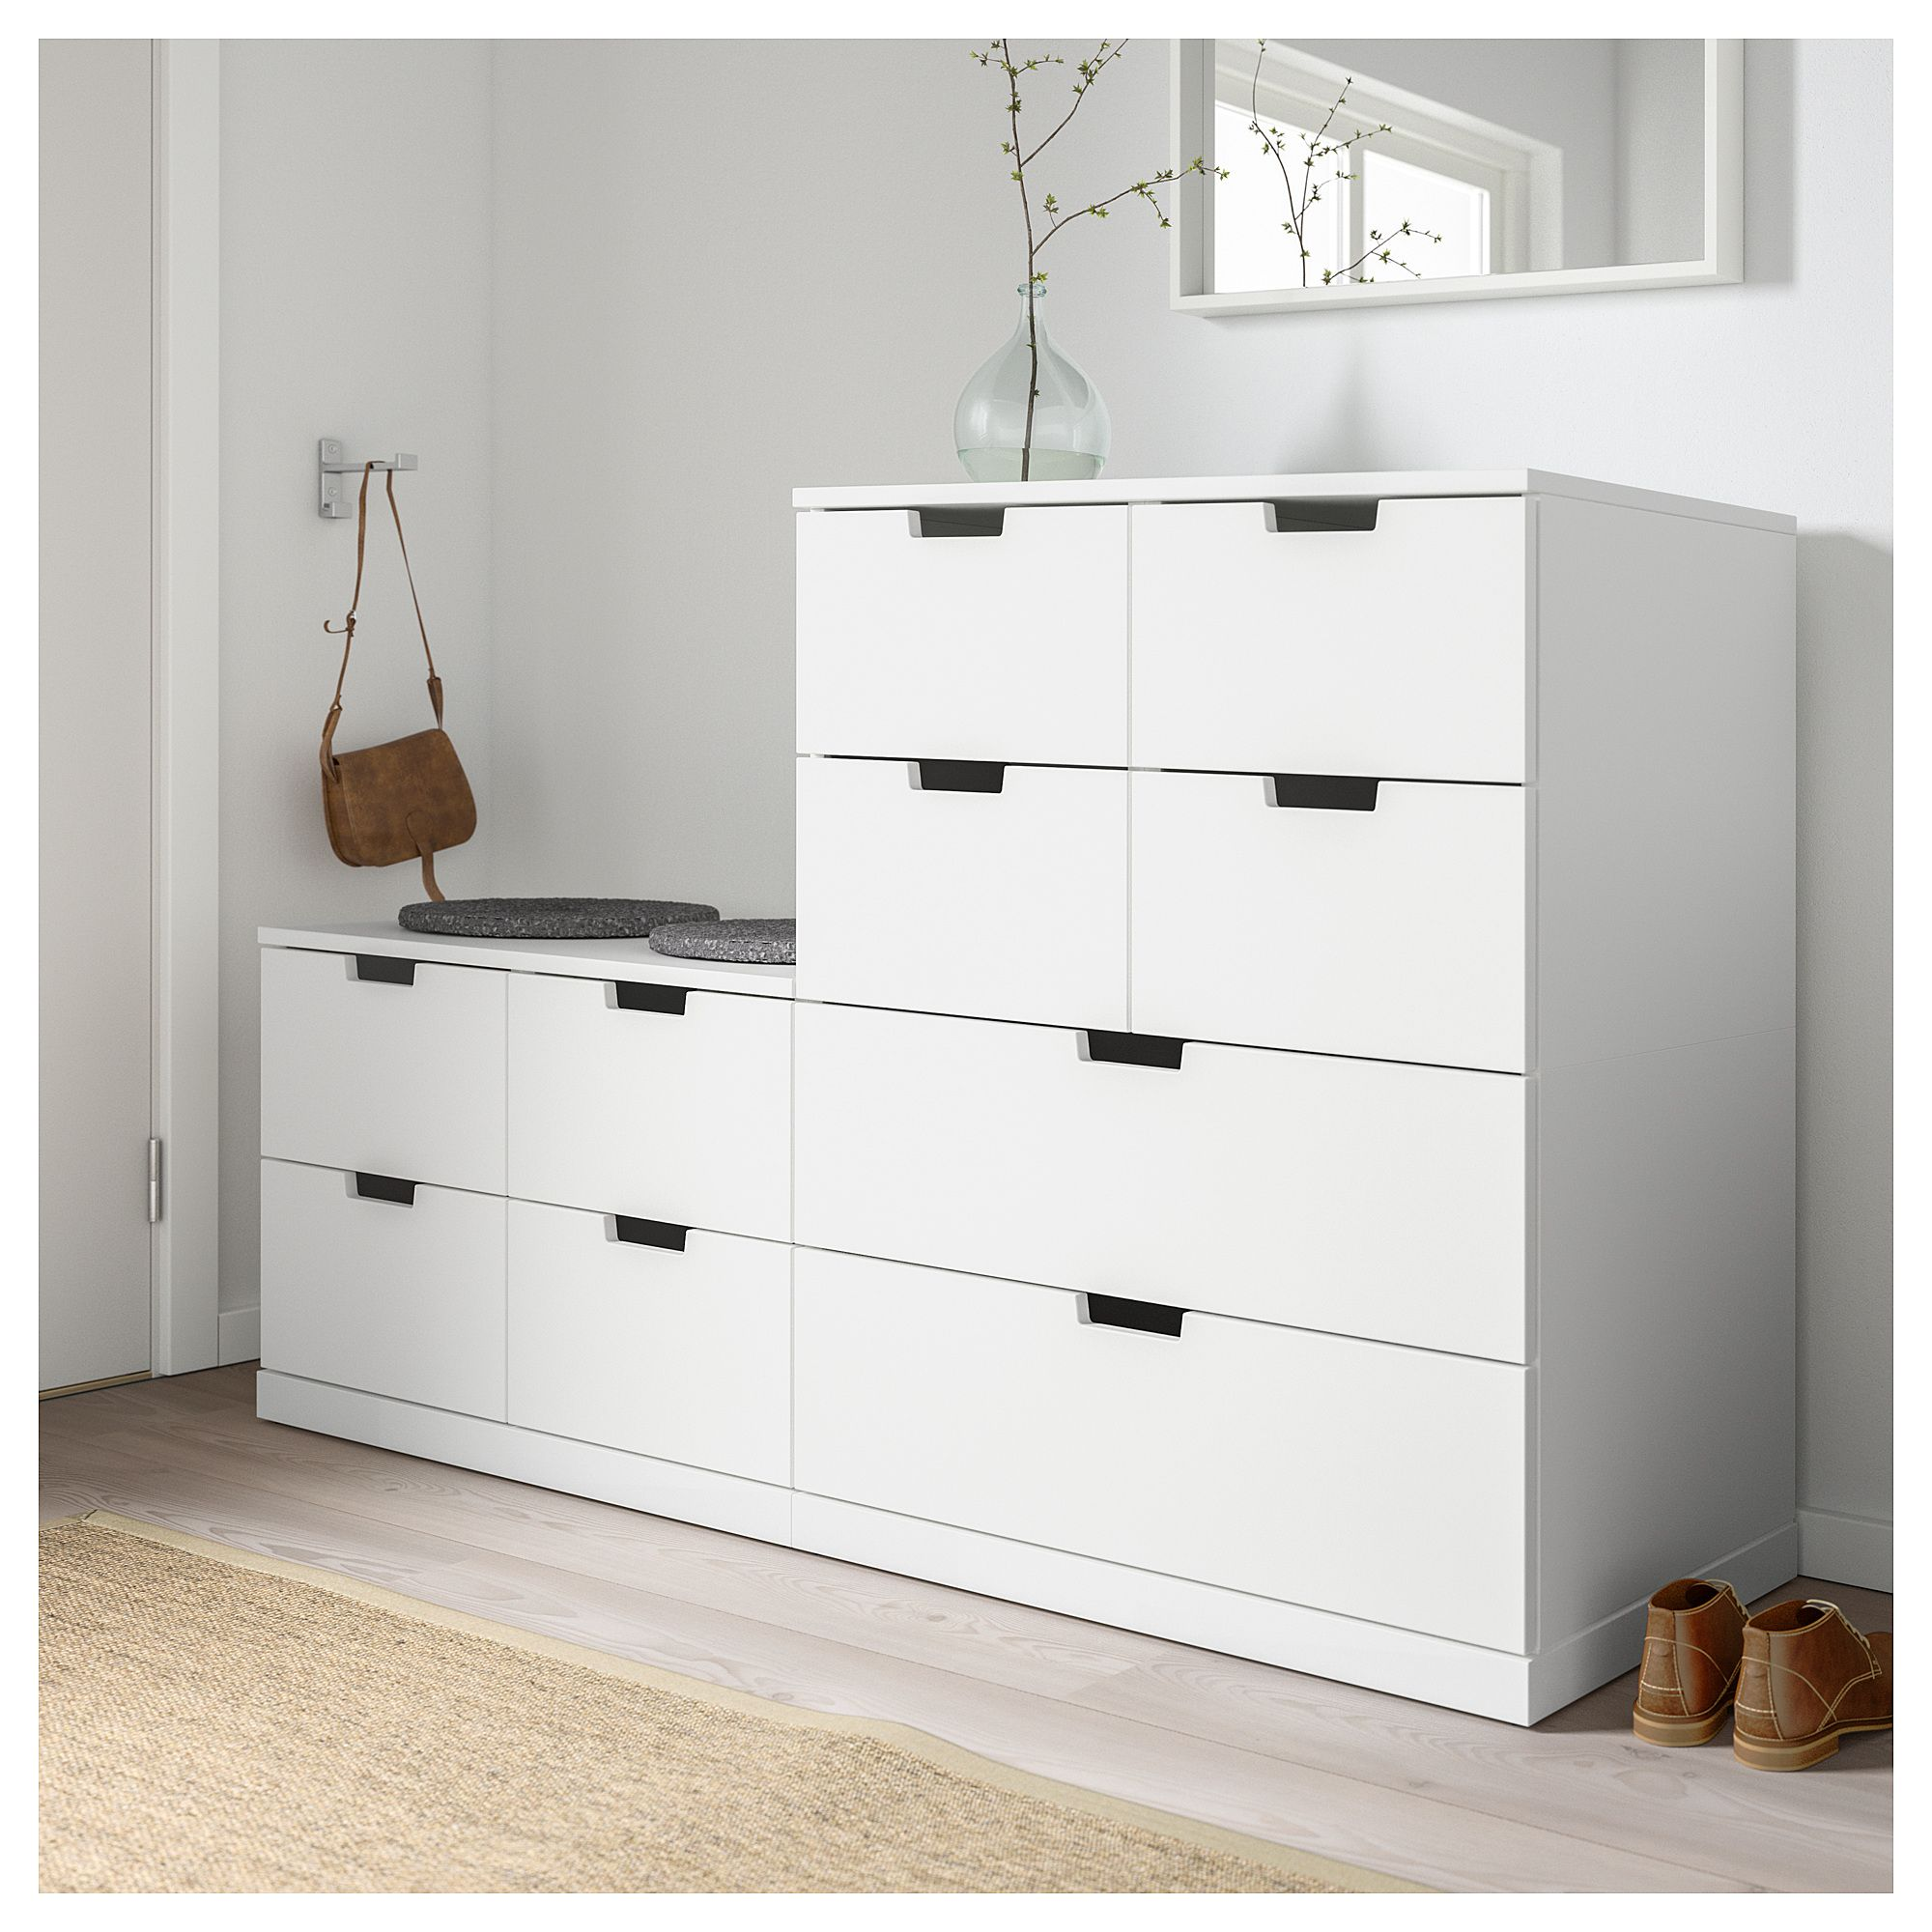 Ikea Möbel Nordli 10 Drawer Chest Nordli White In 2019 Vorzimmer Kommode